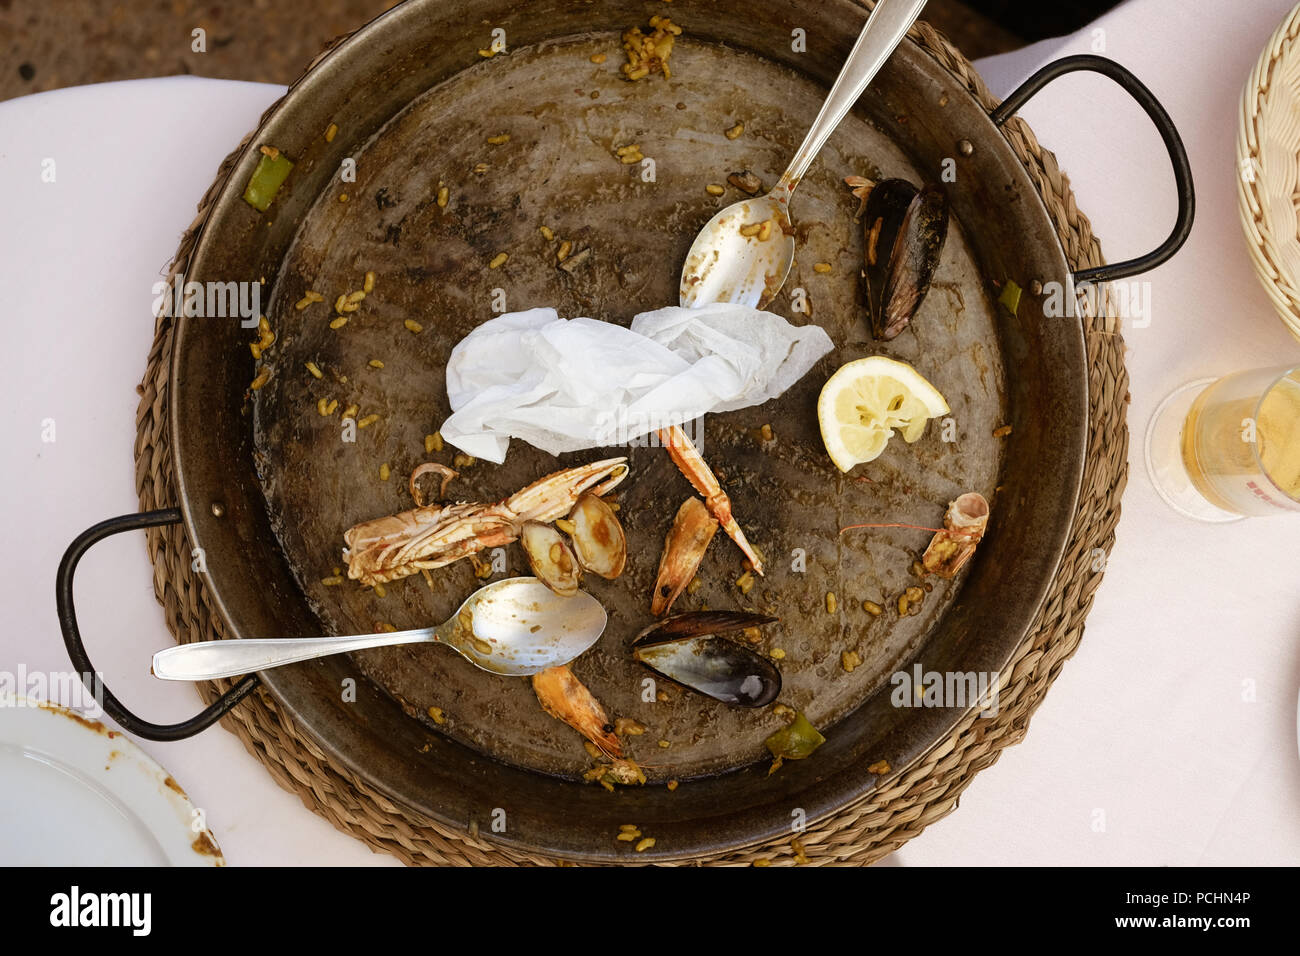 An already eaten up paella pan with two spoons. Parts of crabs and clams are laying around in the old pan. Stock Photo